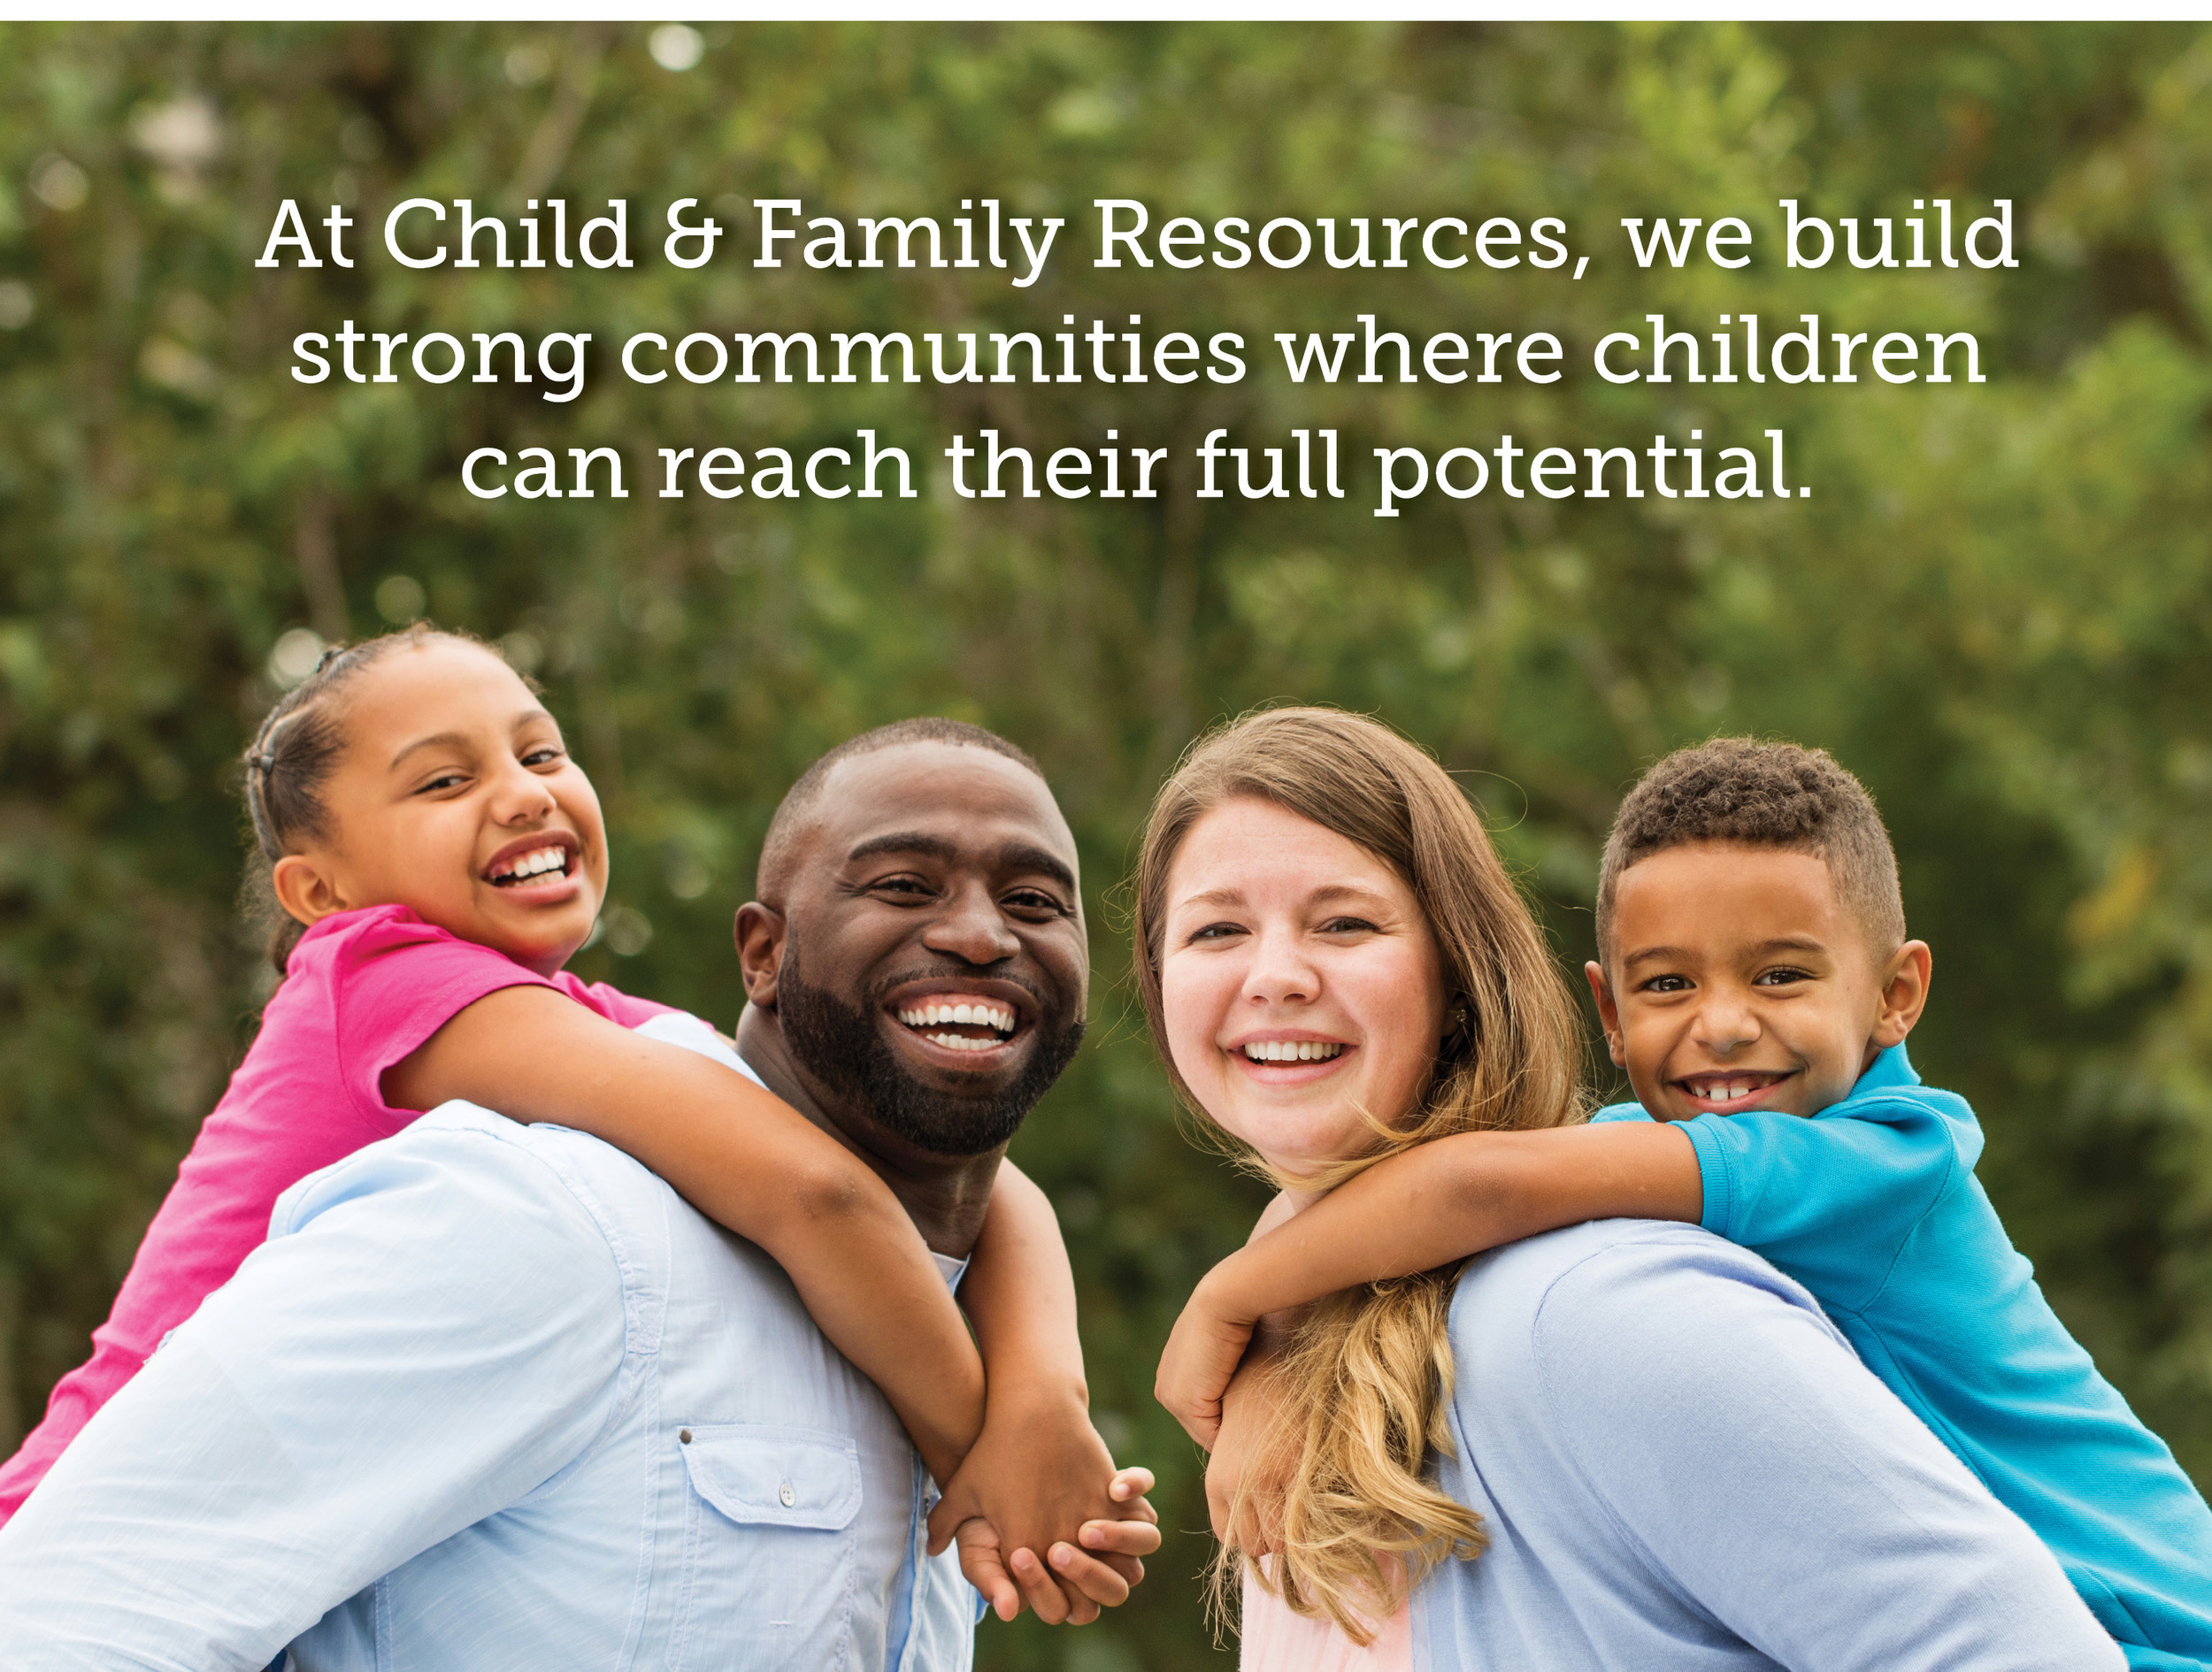 At Child & Family Resources we build strong communities where children can reach their full potential